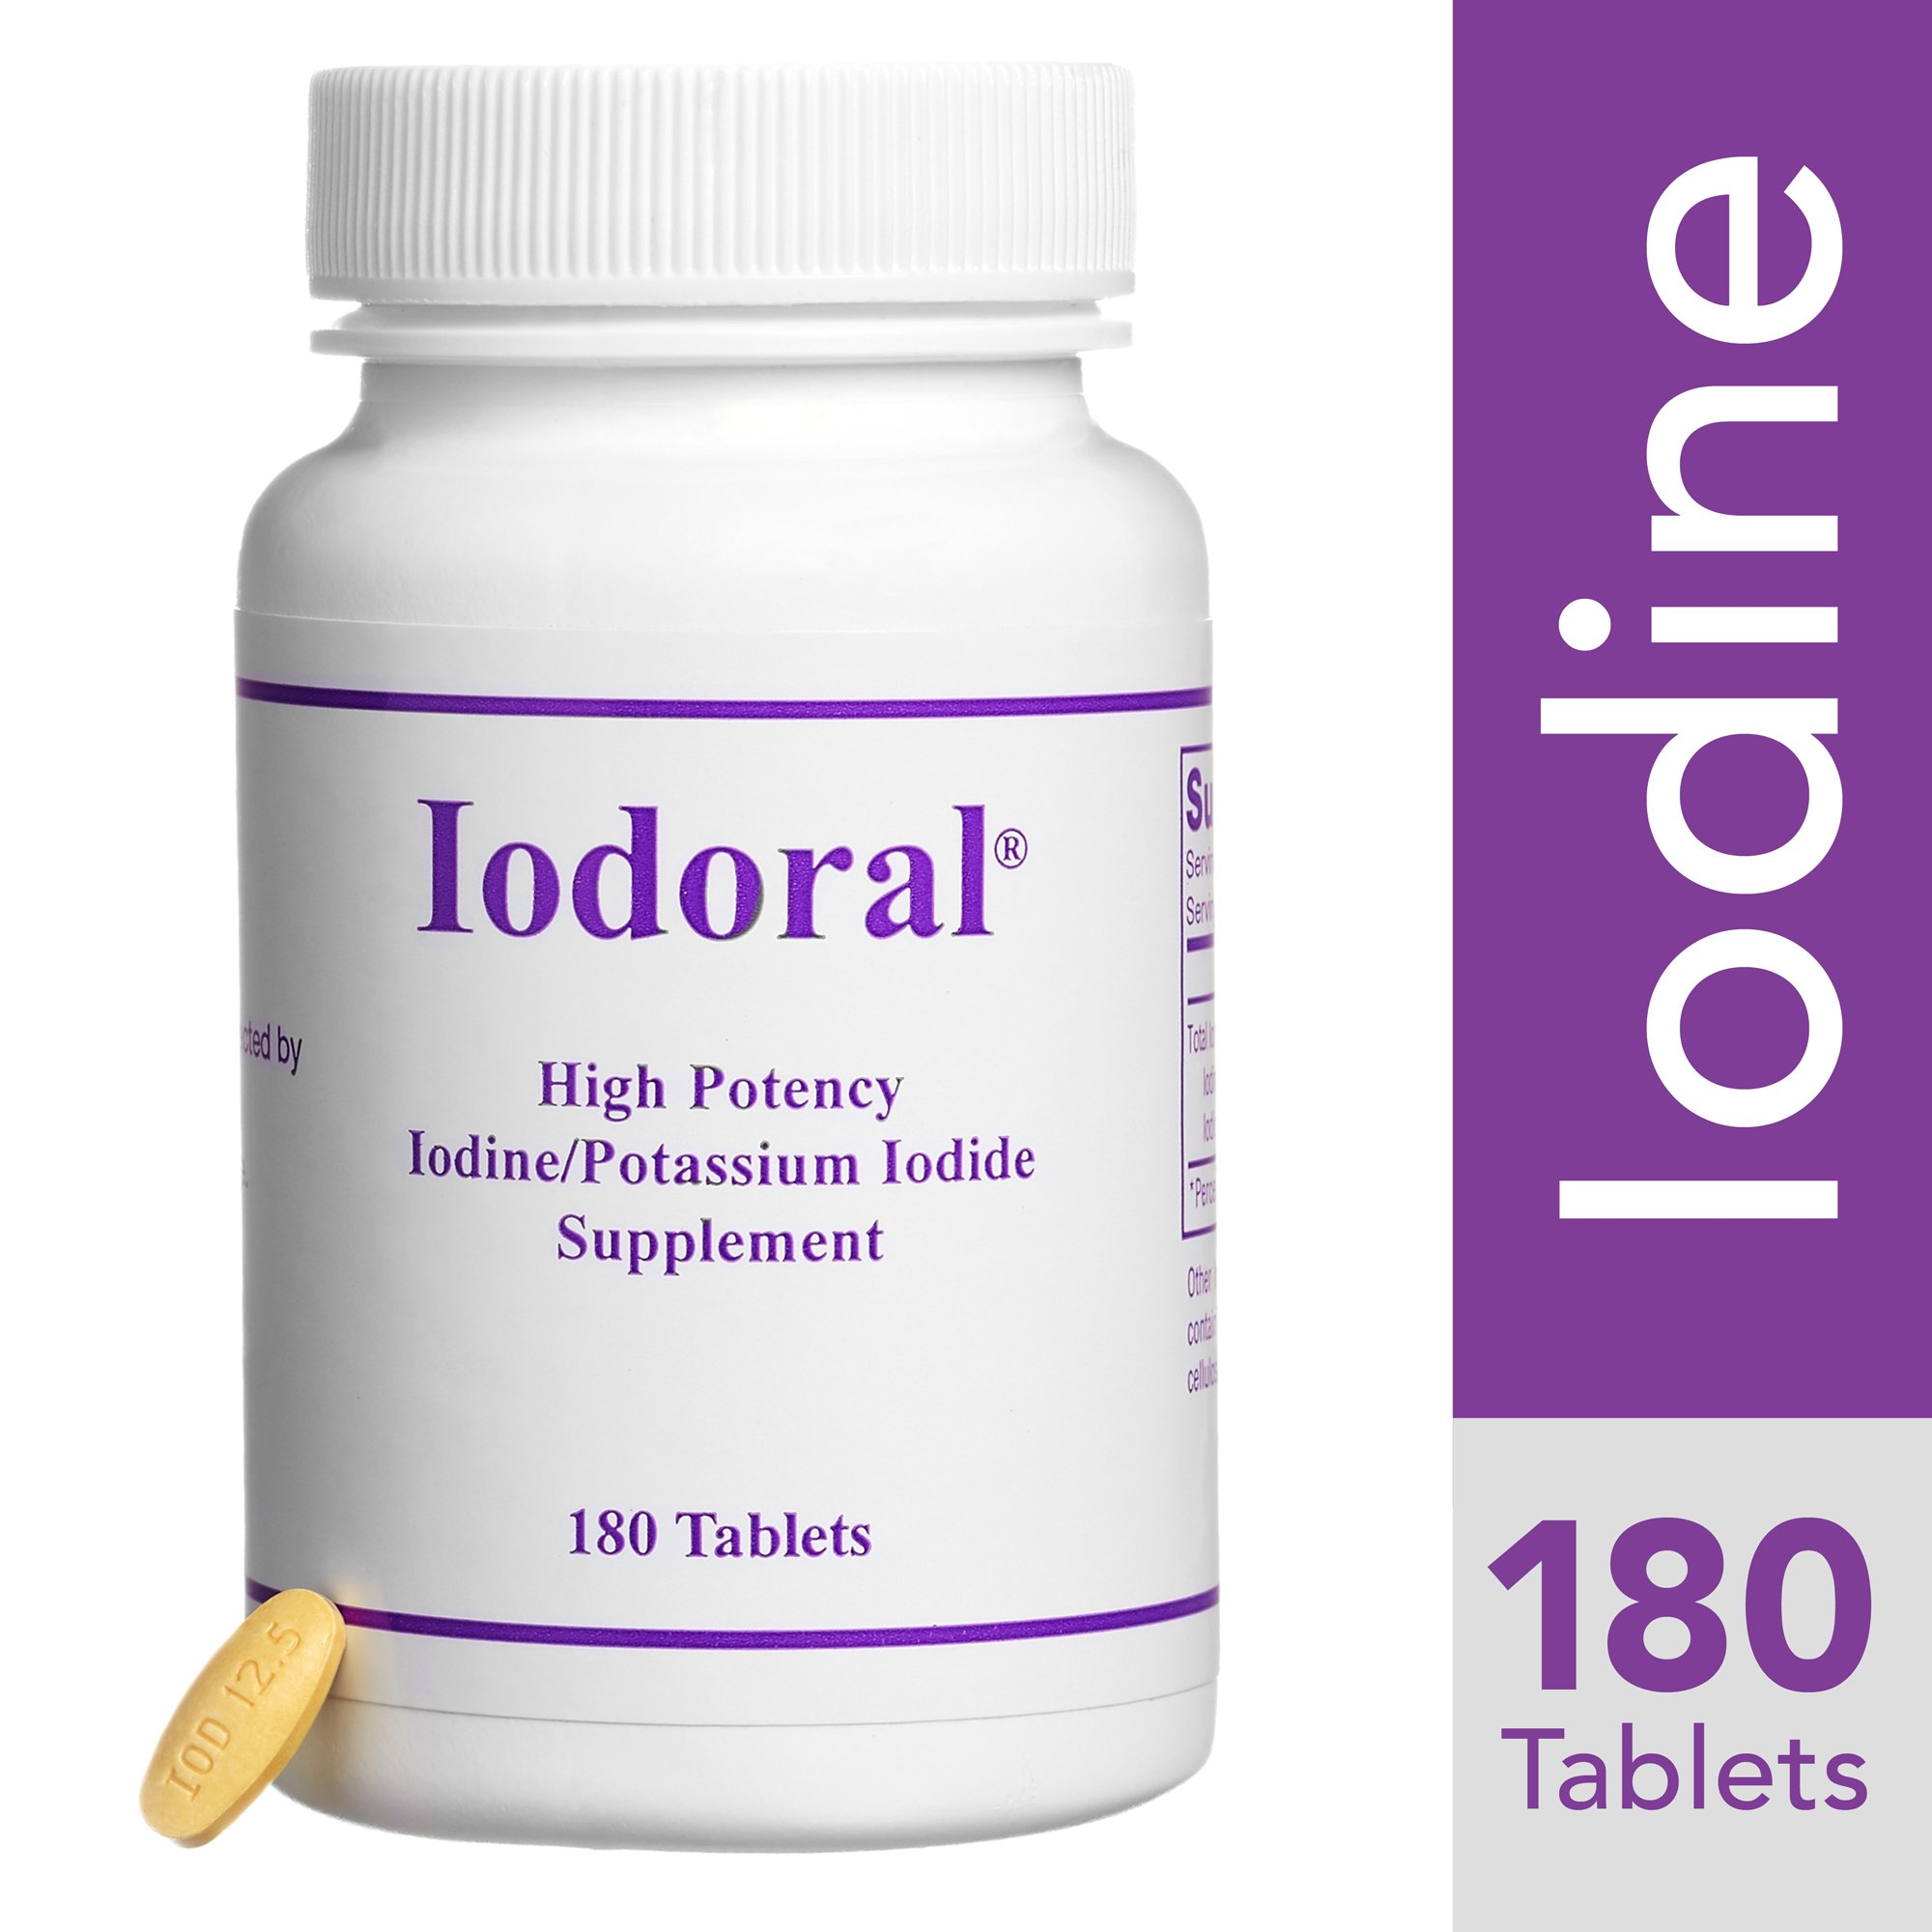 Optimox - Iodoral, High Potency Iodine Potassium Iodide Thyroid Support Supplement, 180 Tablets